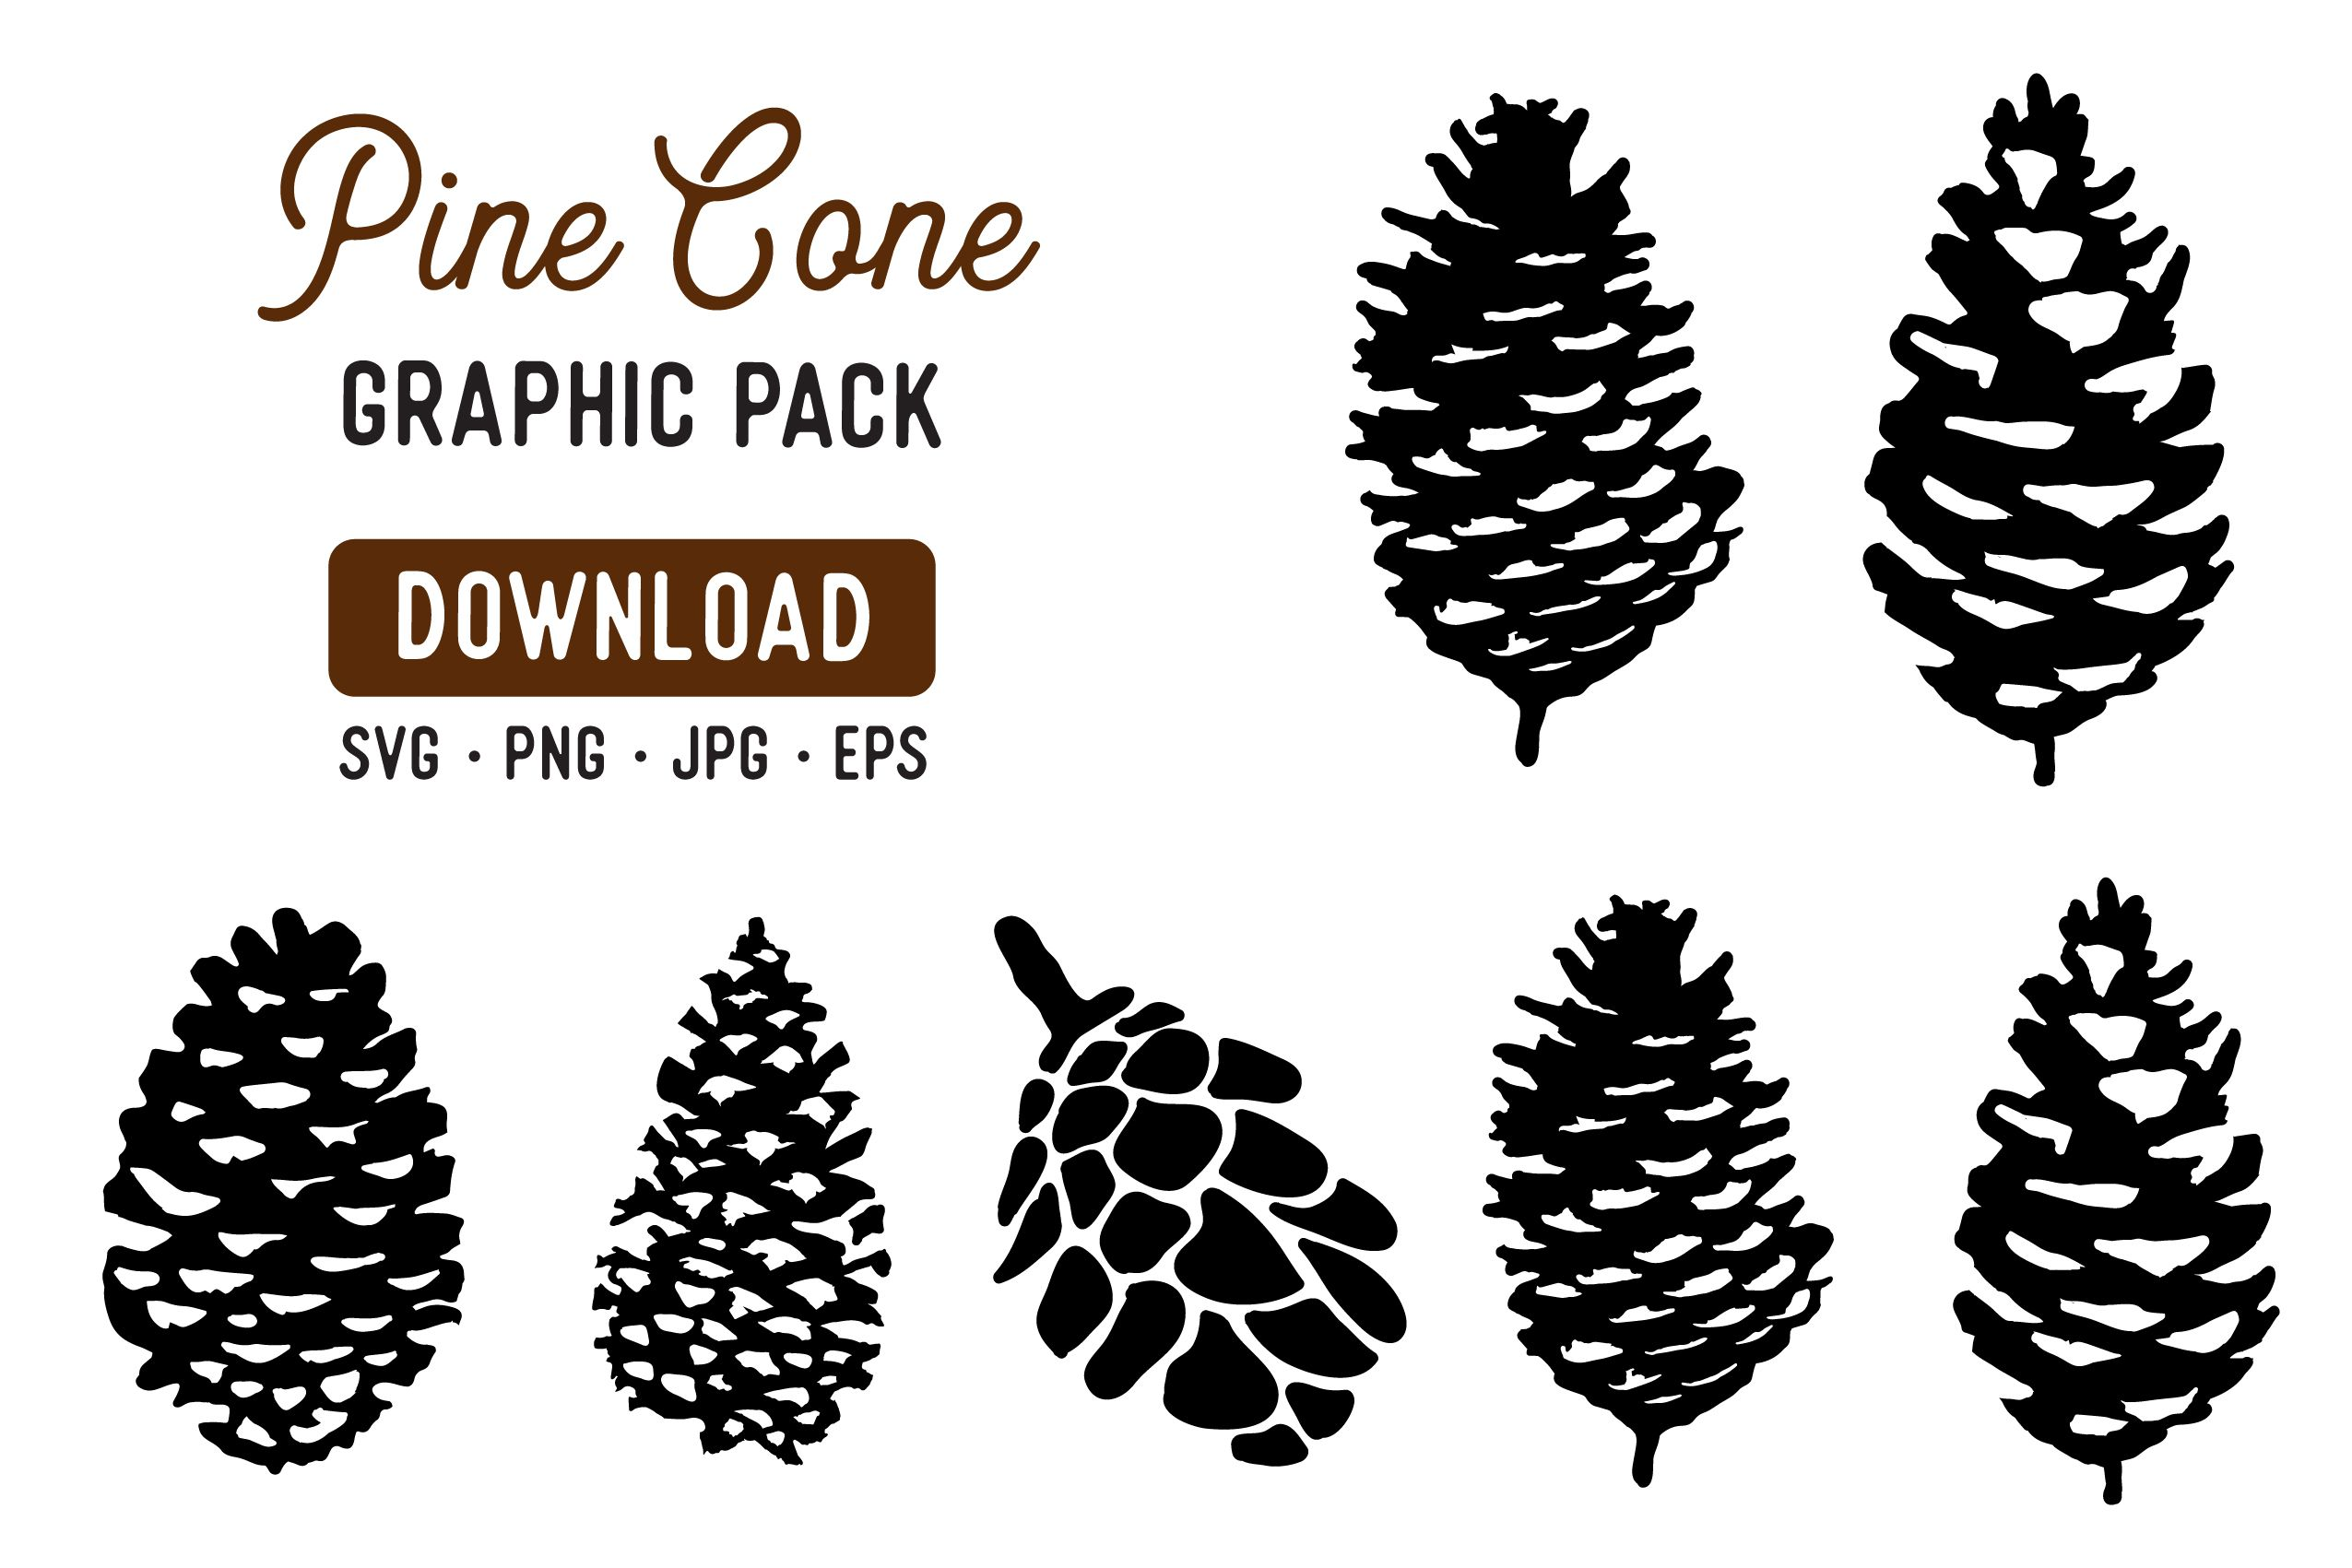 Pine Cone Stencil Graphic Pack Graphic By The Gradient Fox Creative Fabrica Pine Cones Pine Tree Silhouette Pine Cone Drawing